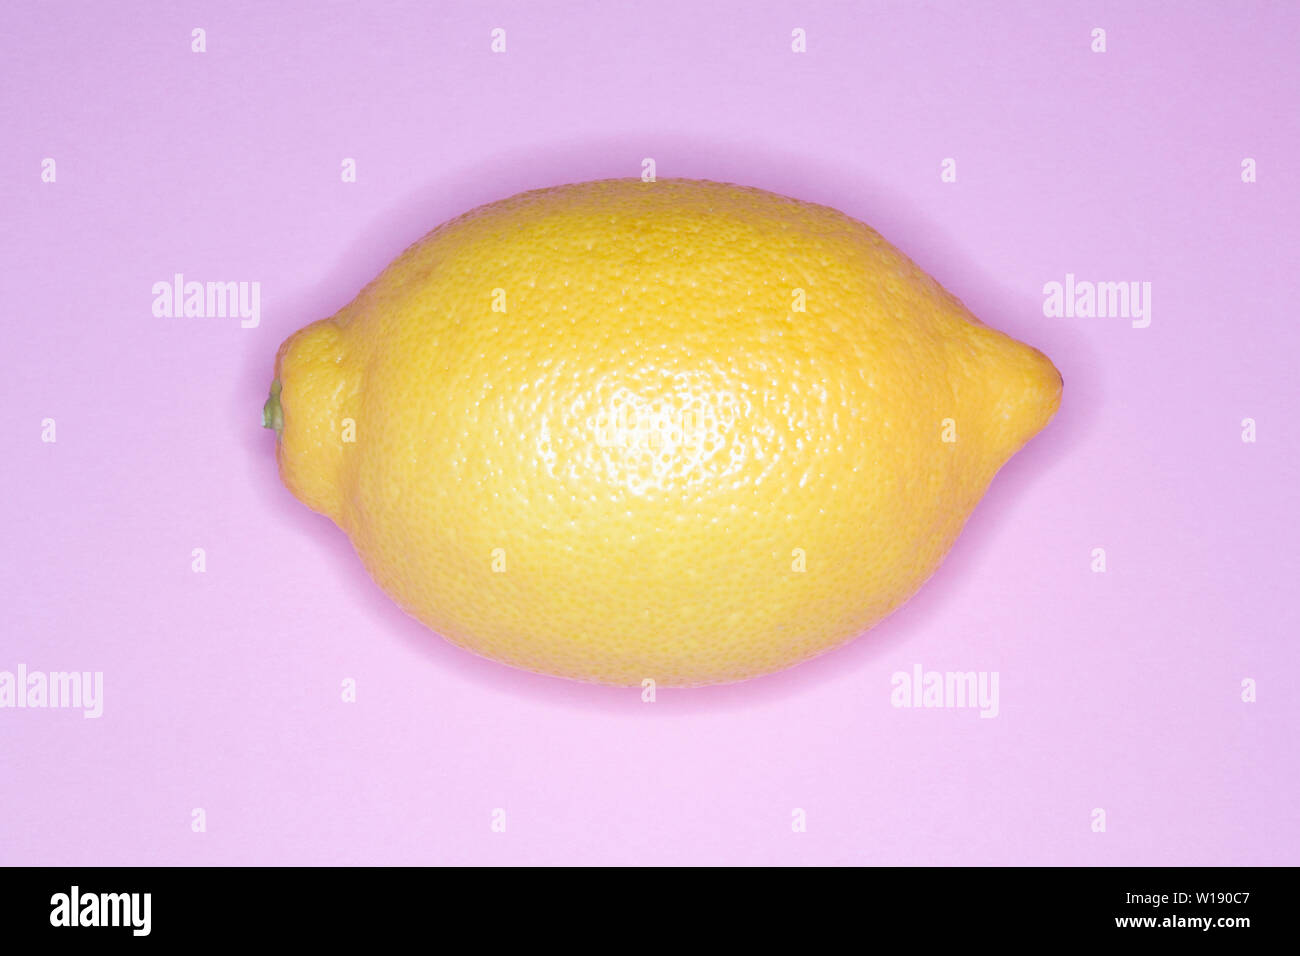 vitamin c,lemon - Stock Image